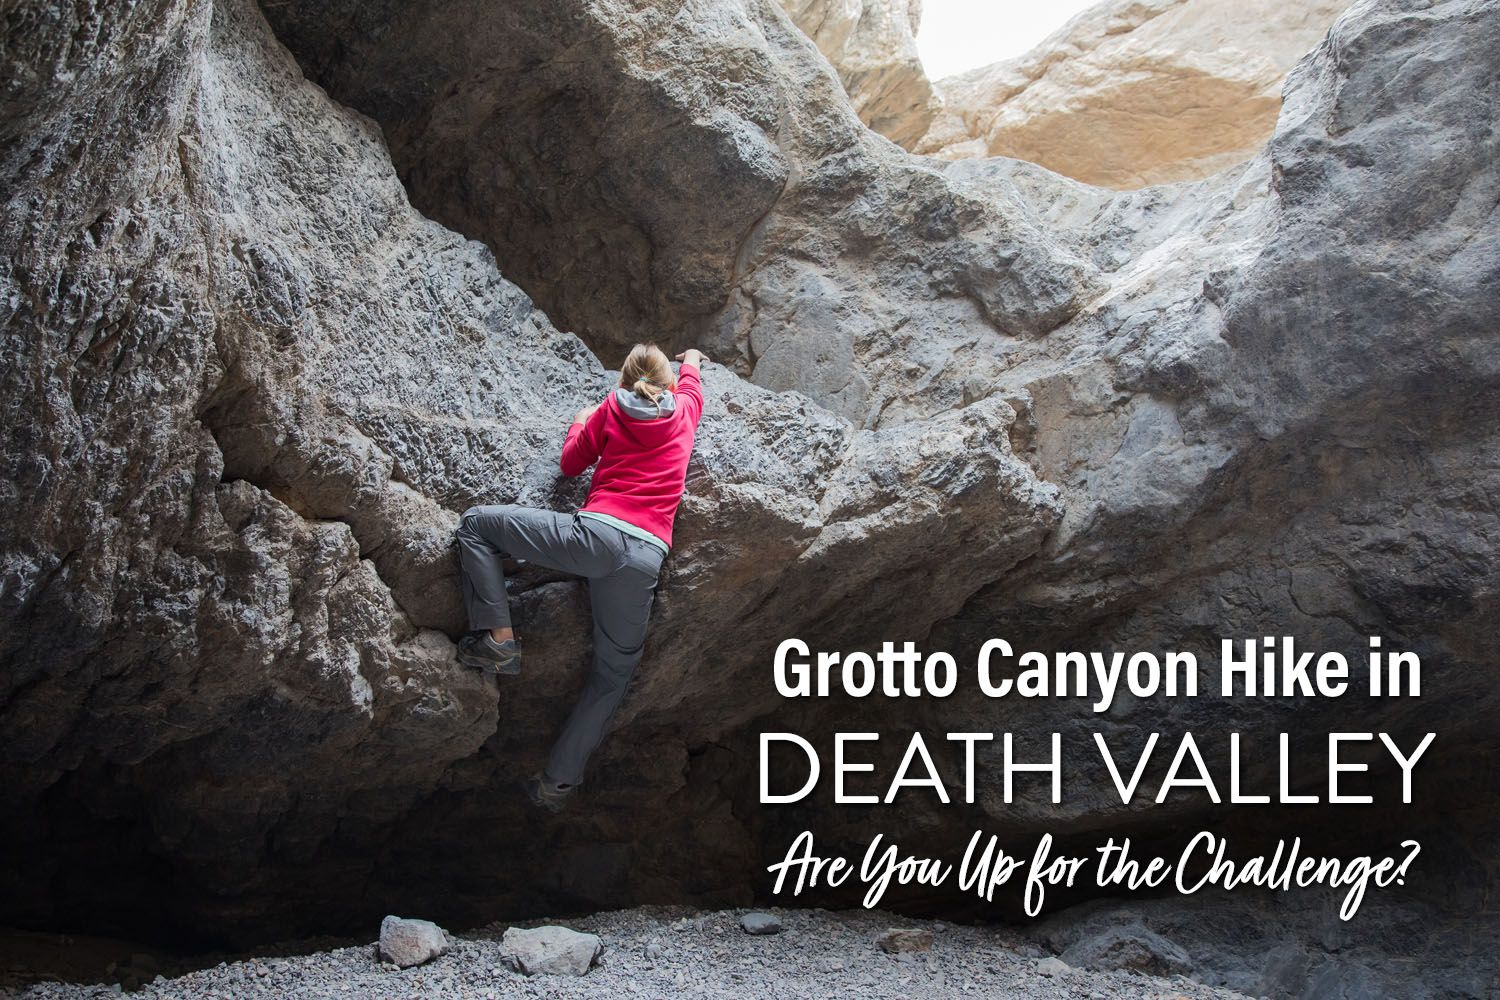 Grotto Canyon Hike Death Valley